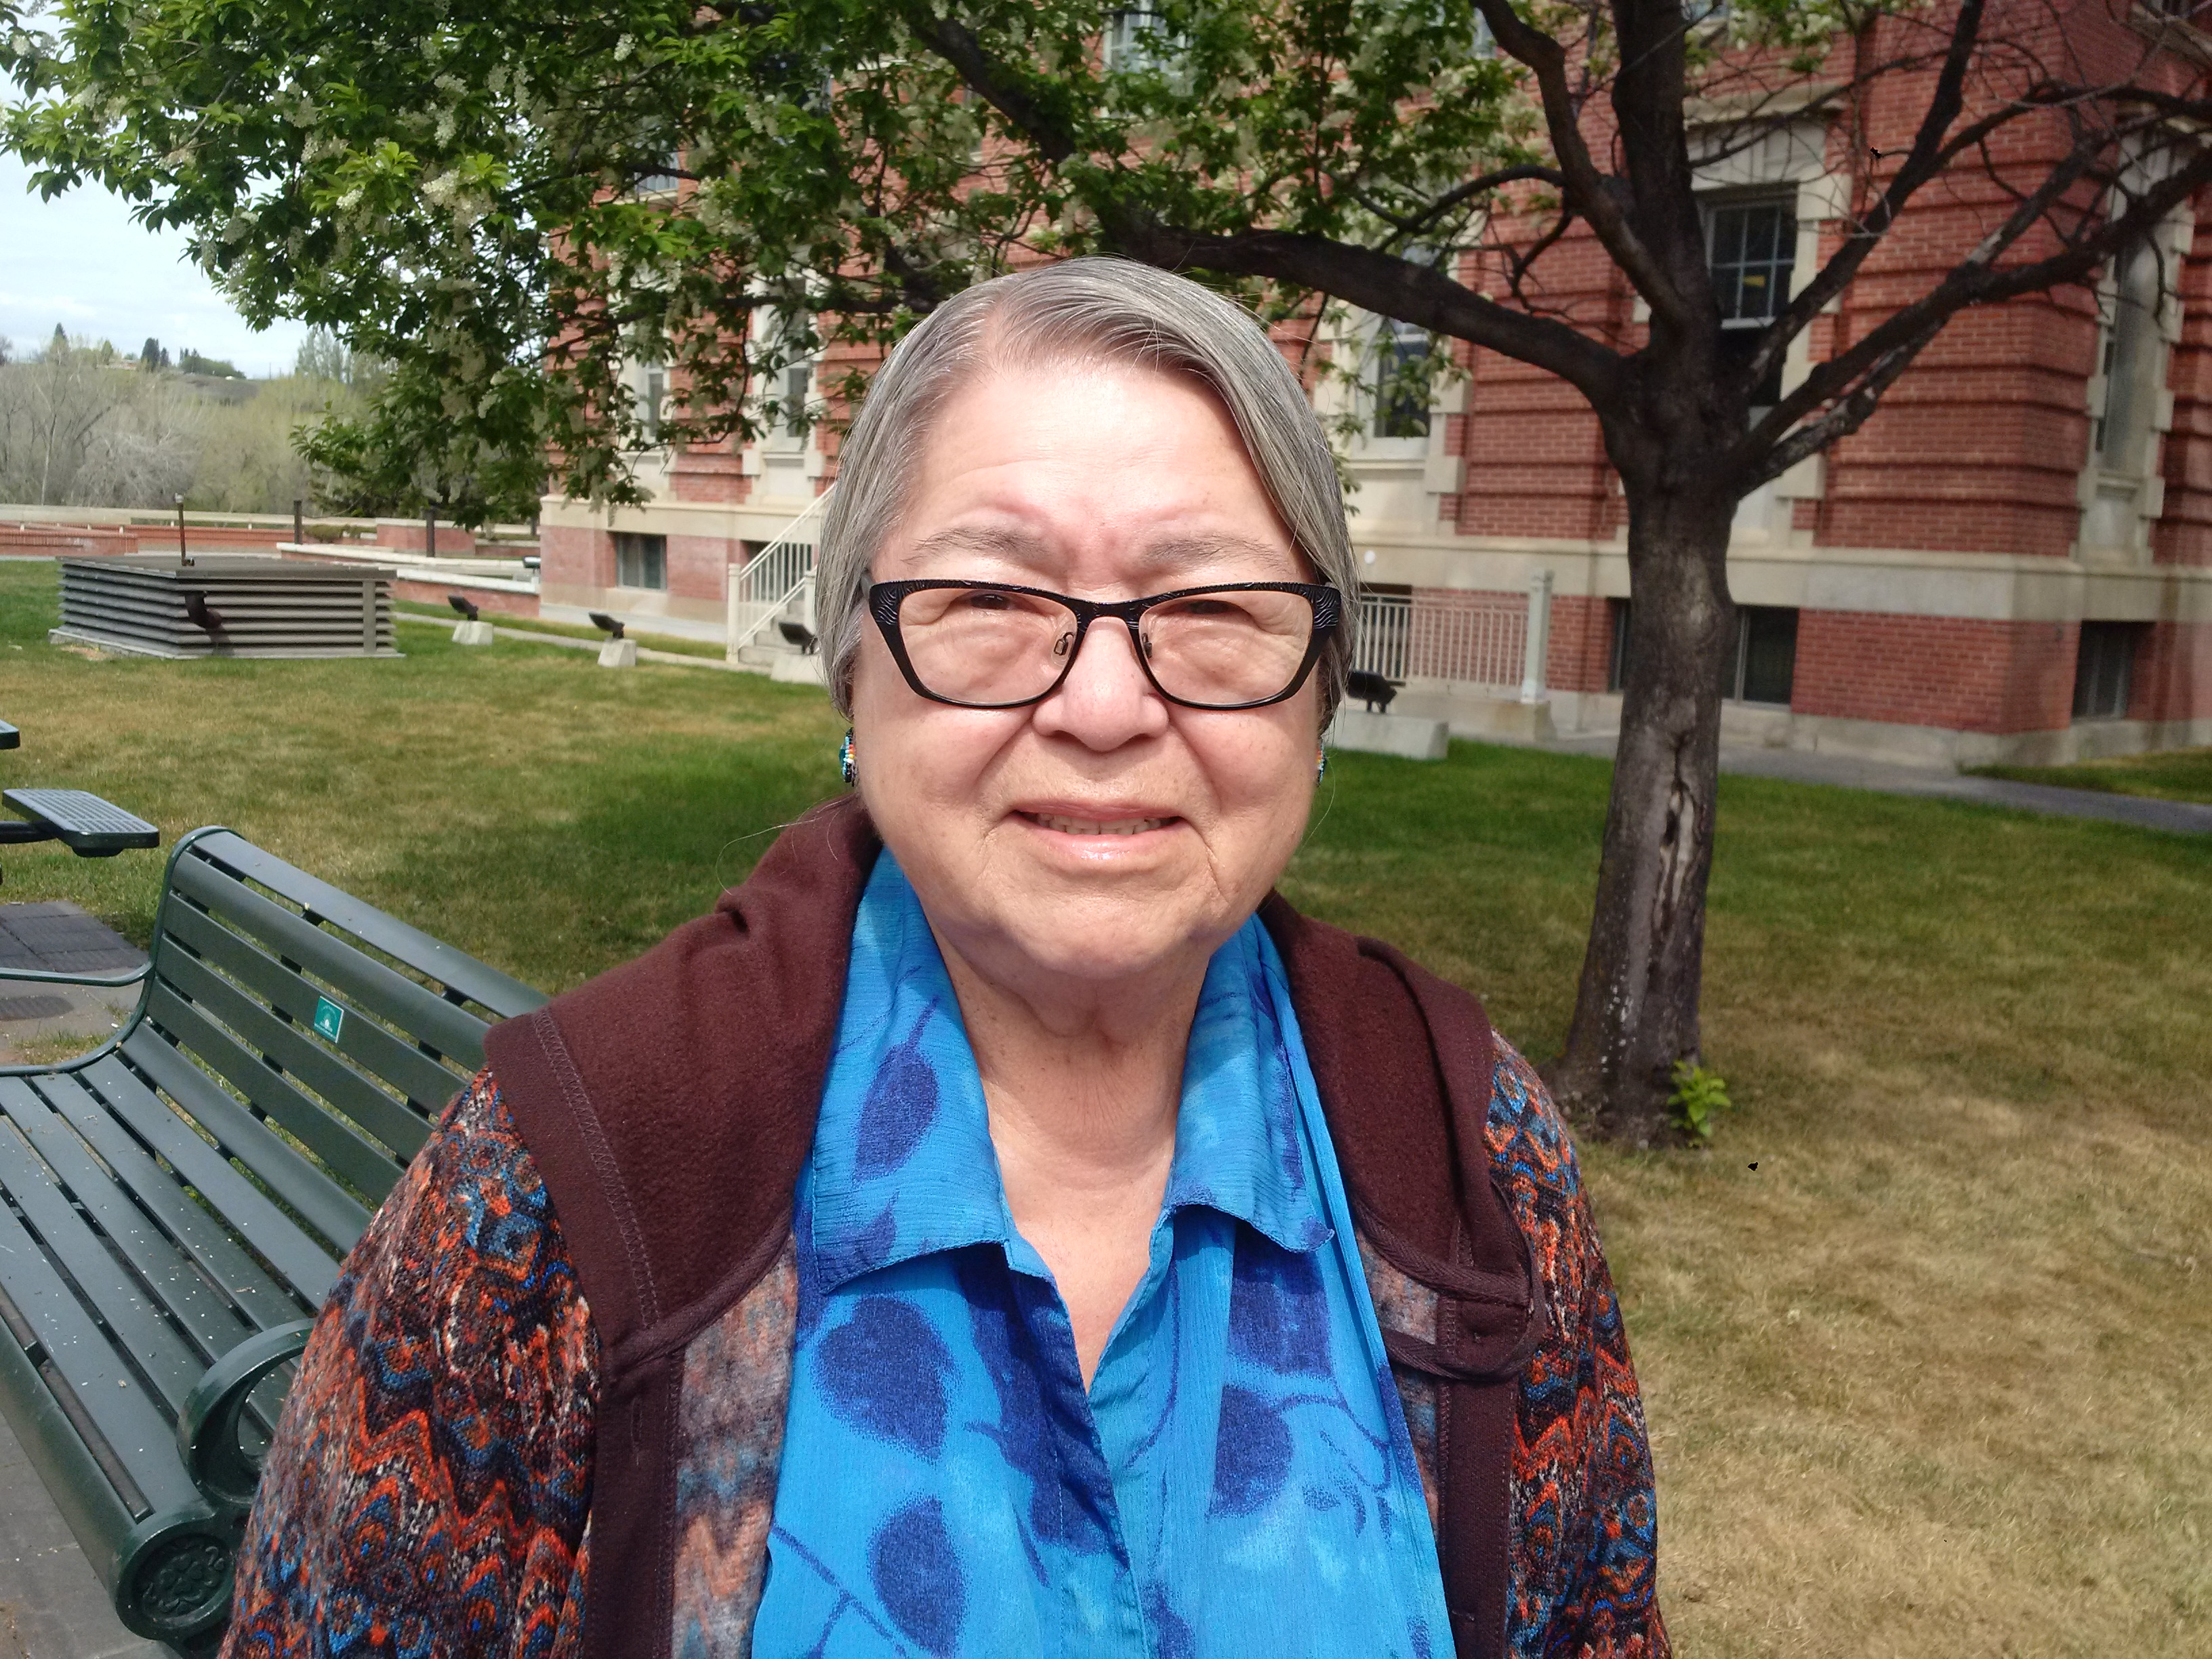 Margaret Oakes, Connie Oakes' adoptive mother, smiles following the hearing in Medicine Hat, Alta., Thursday.